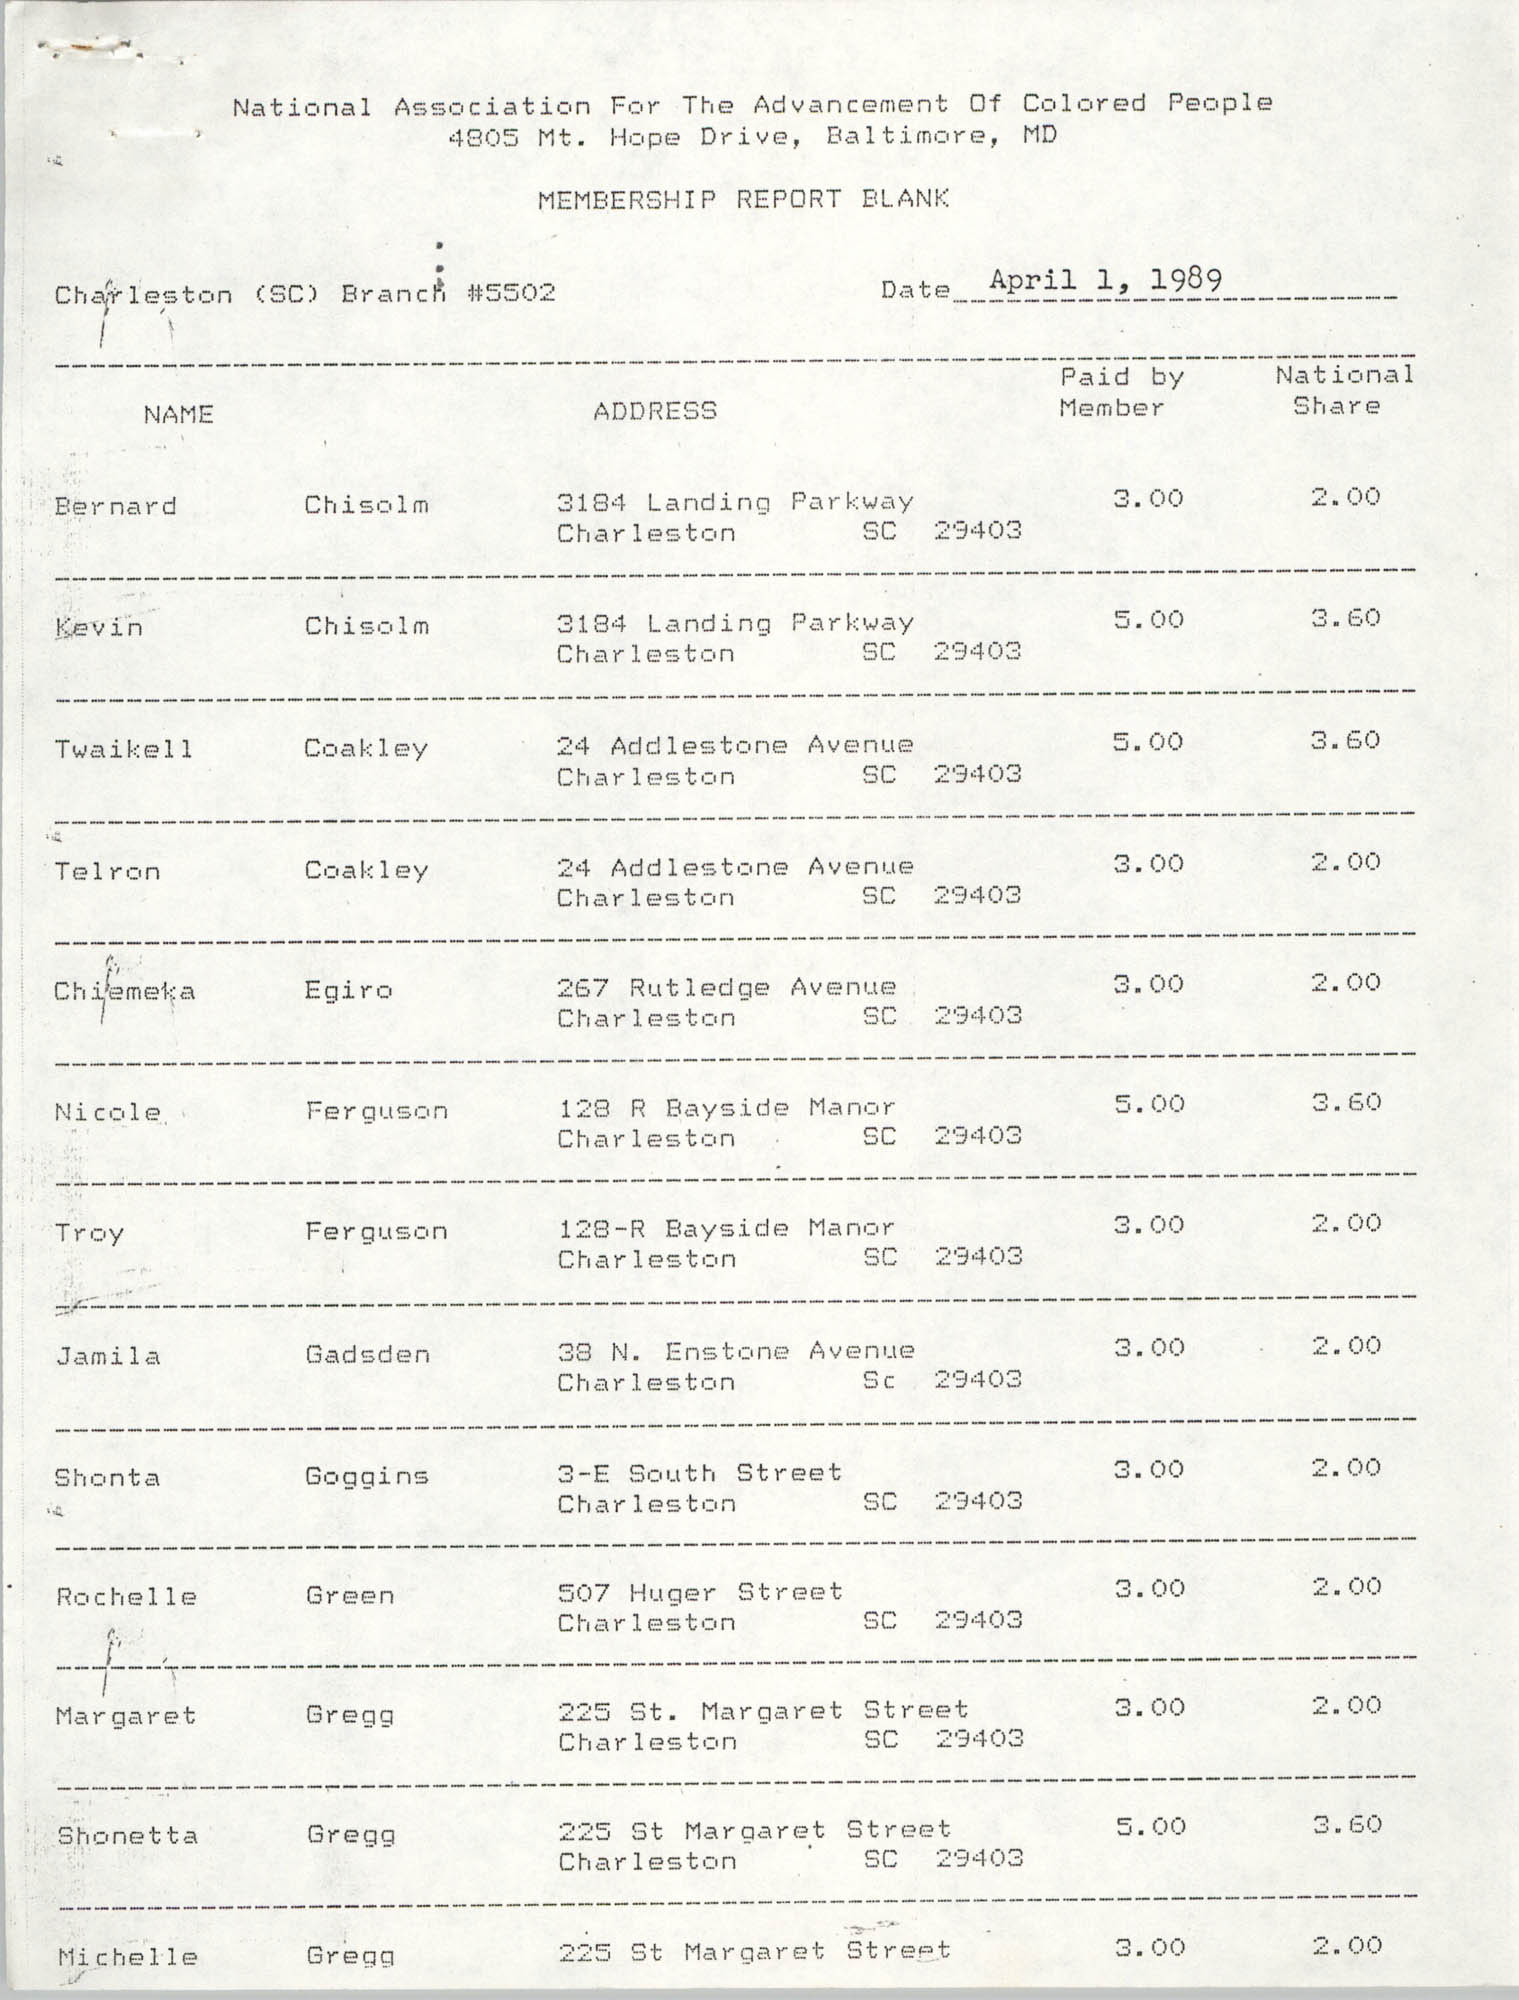 Membership Report Blank, Charleston Branch of the NAACP, Deboria D. Gourdine, April 1, 1989